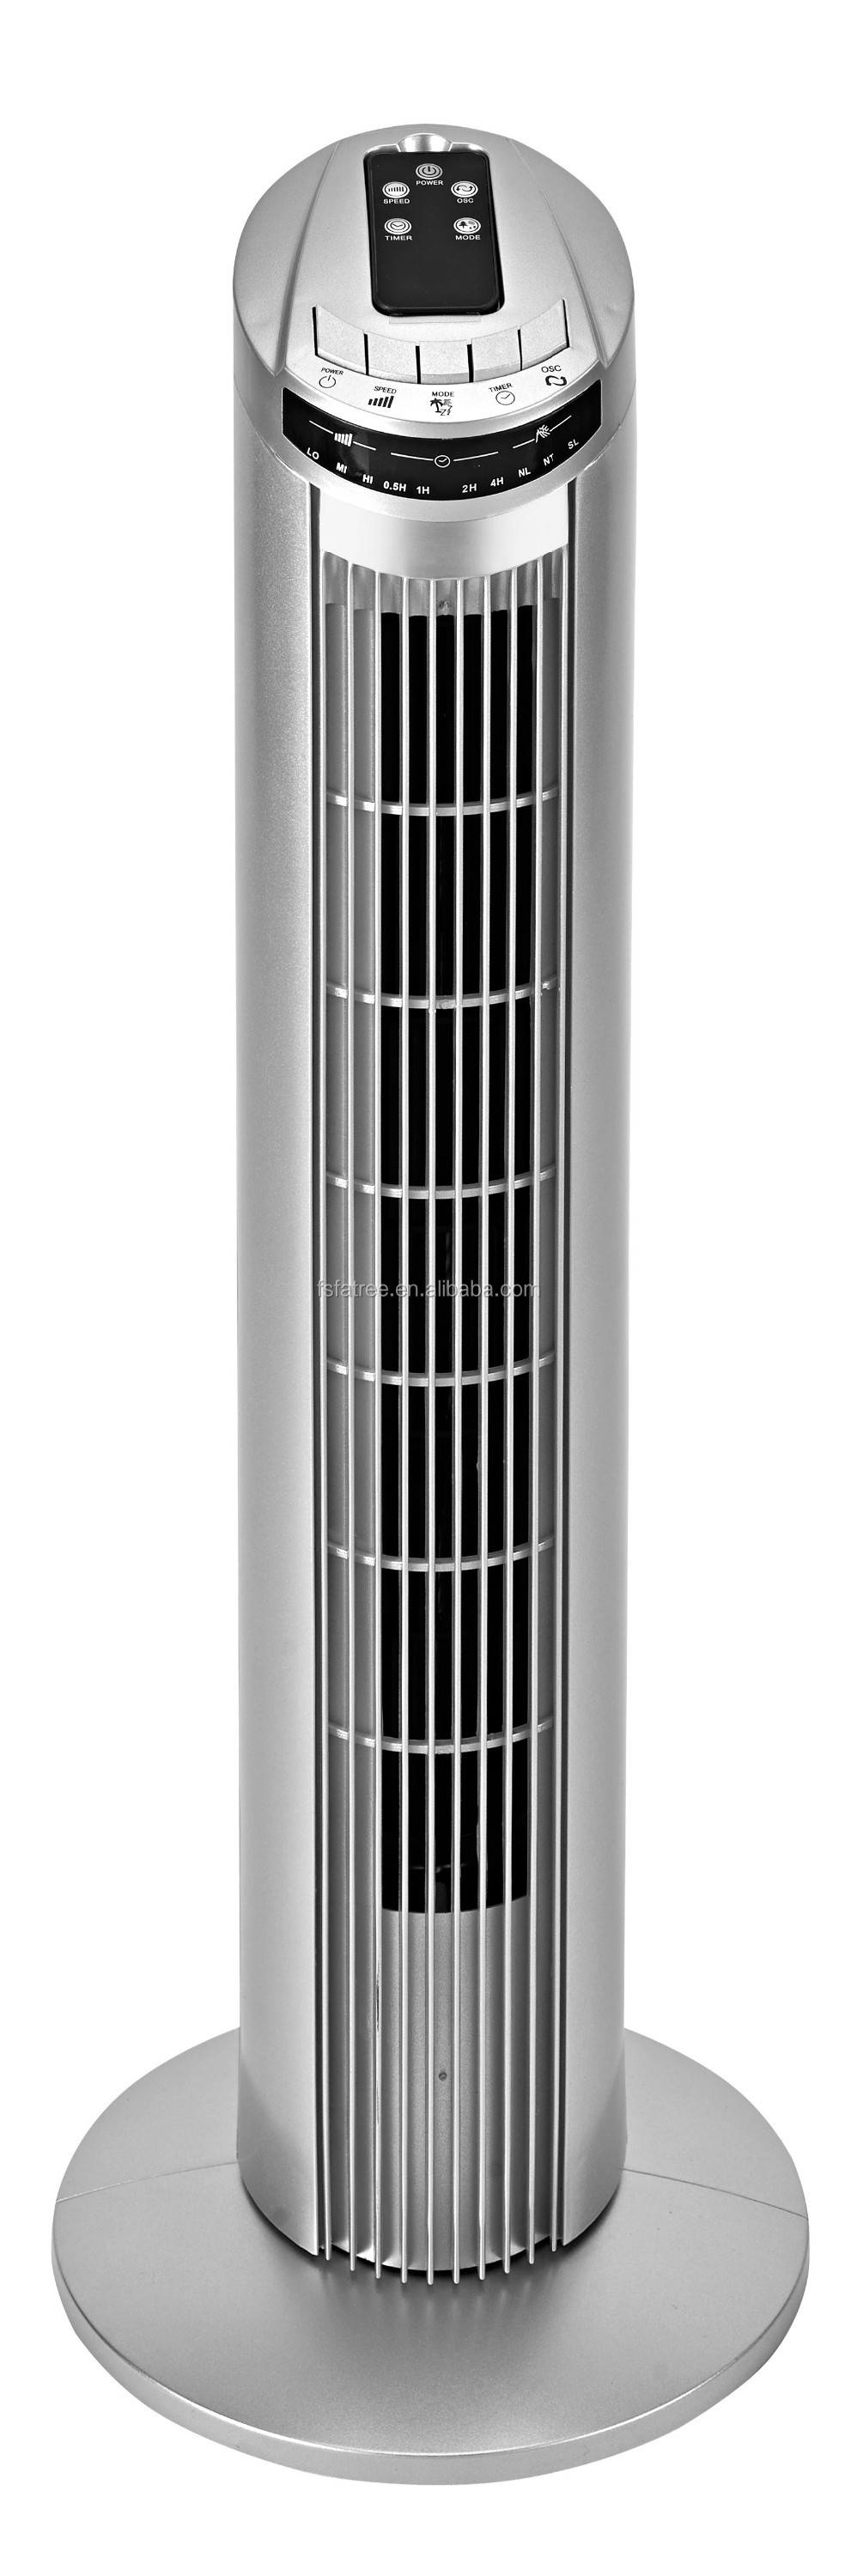 Remote Control Tower Fan | Built In Timer | High Power | Prem-I-Air